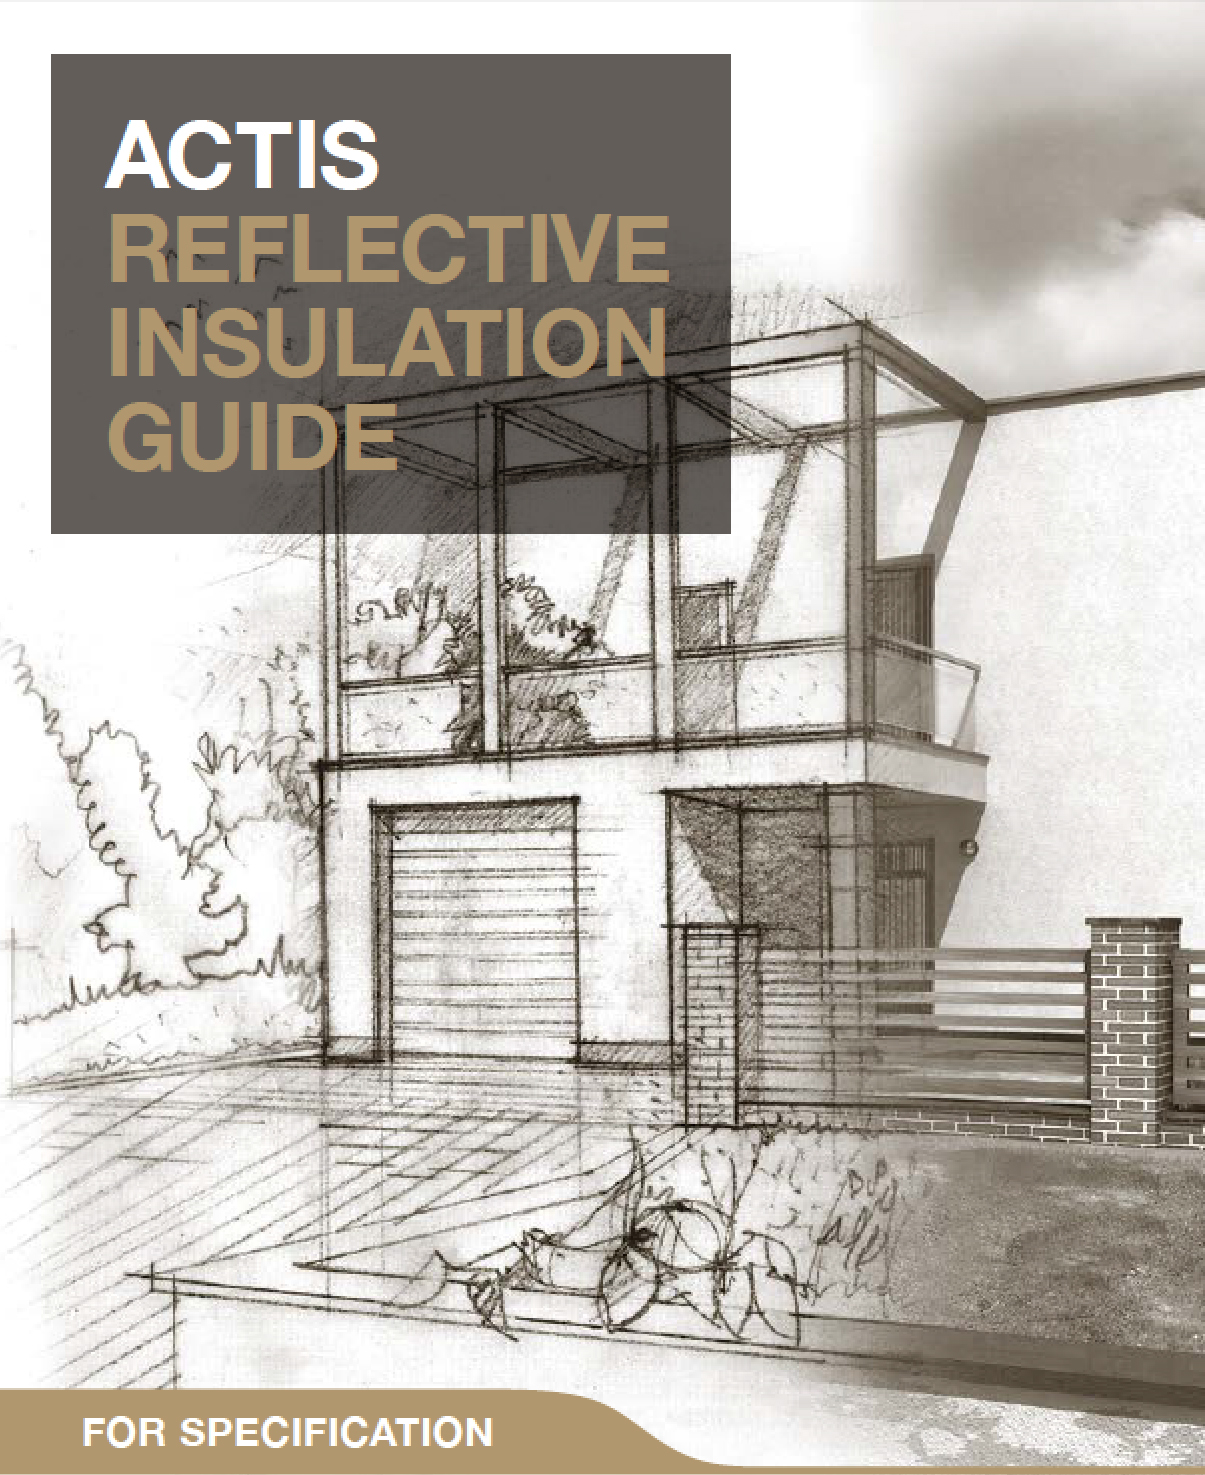 Actis launches latest guide for insulation products